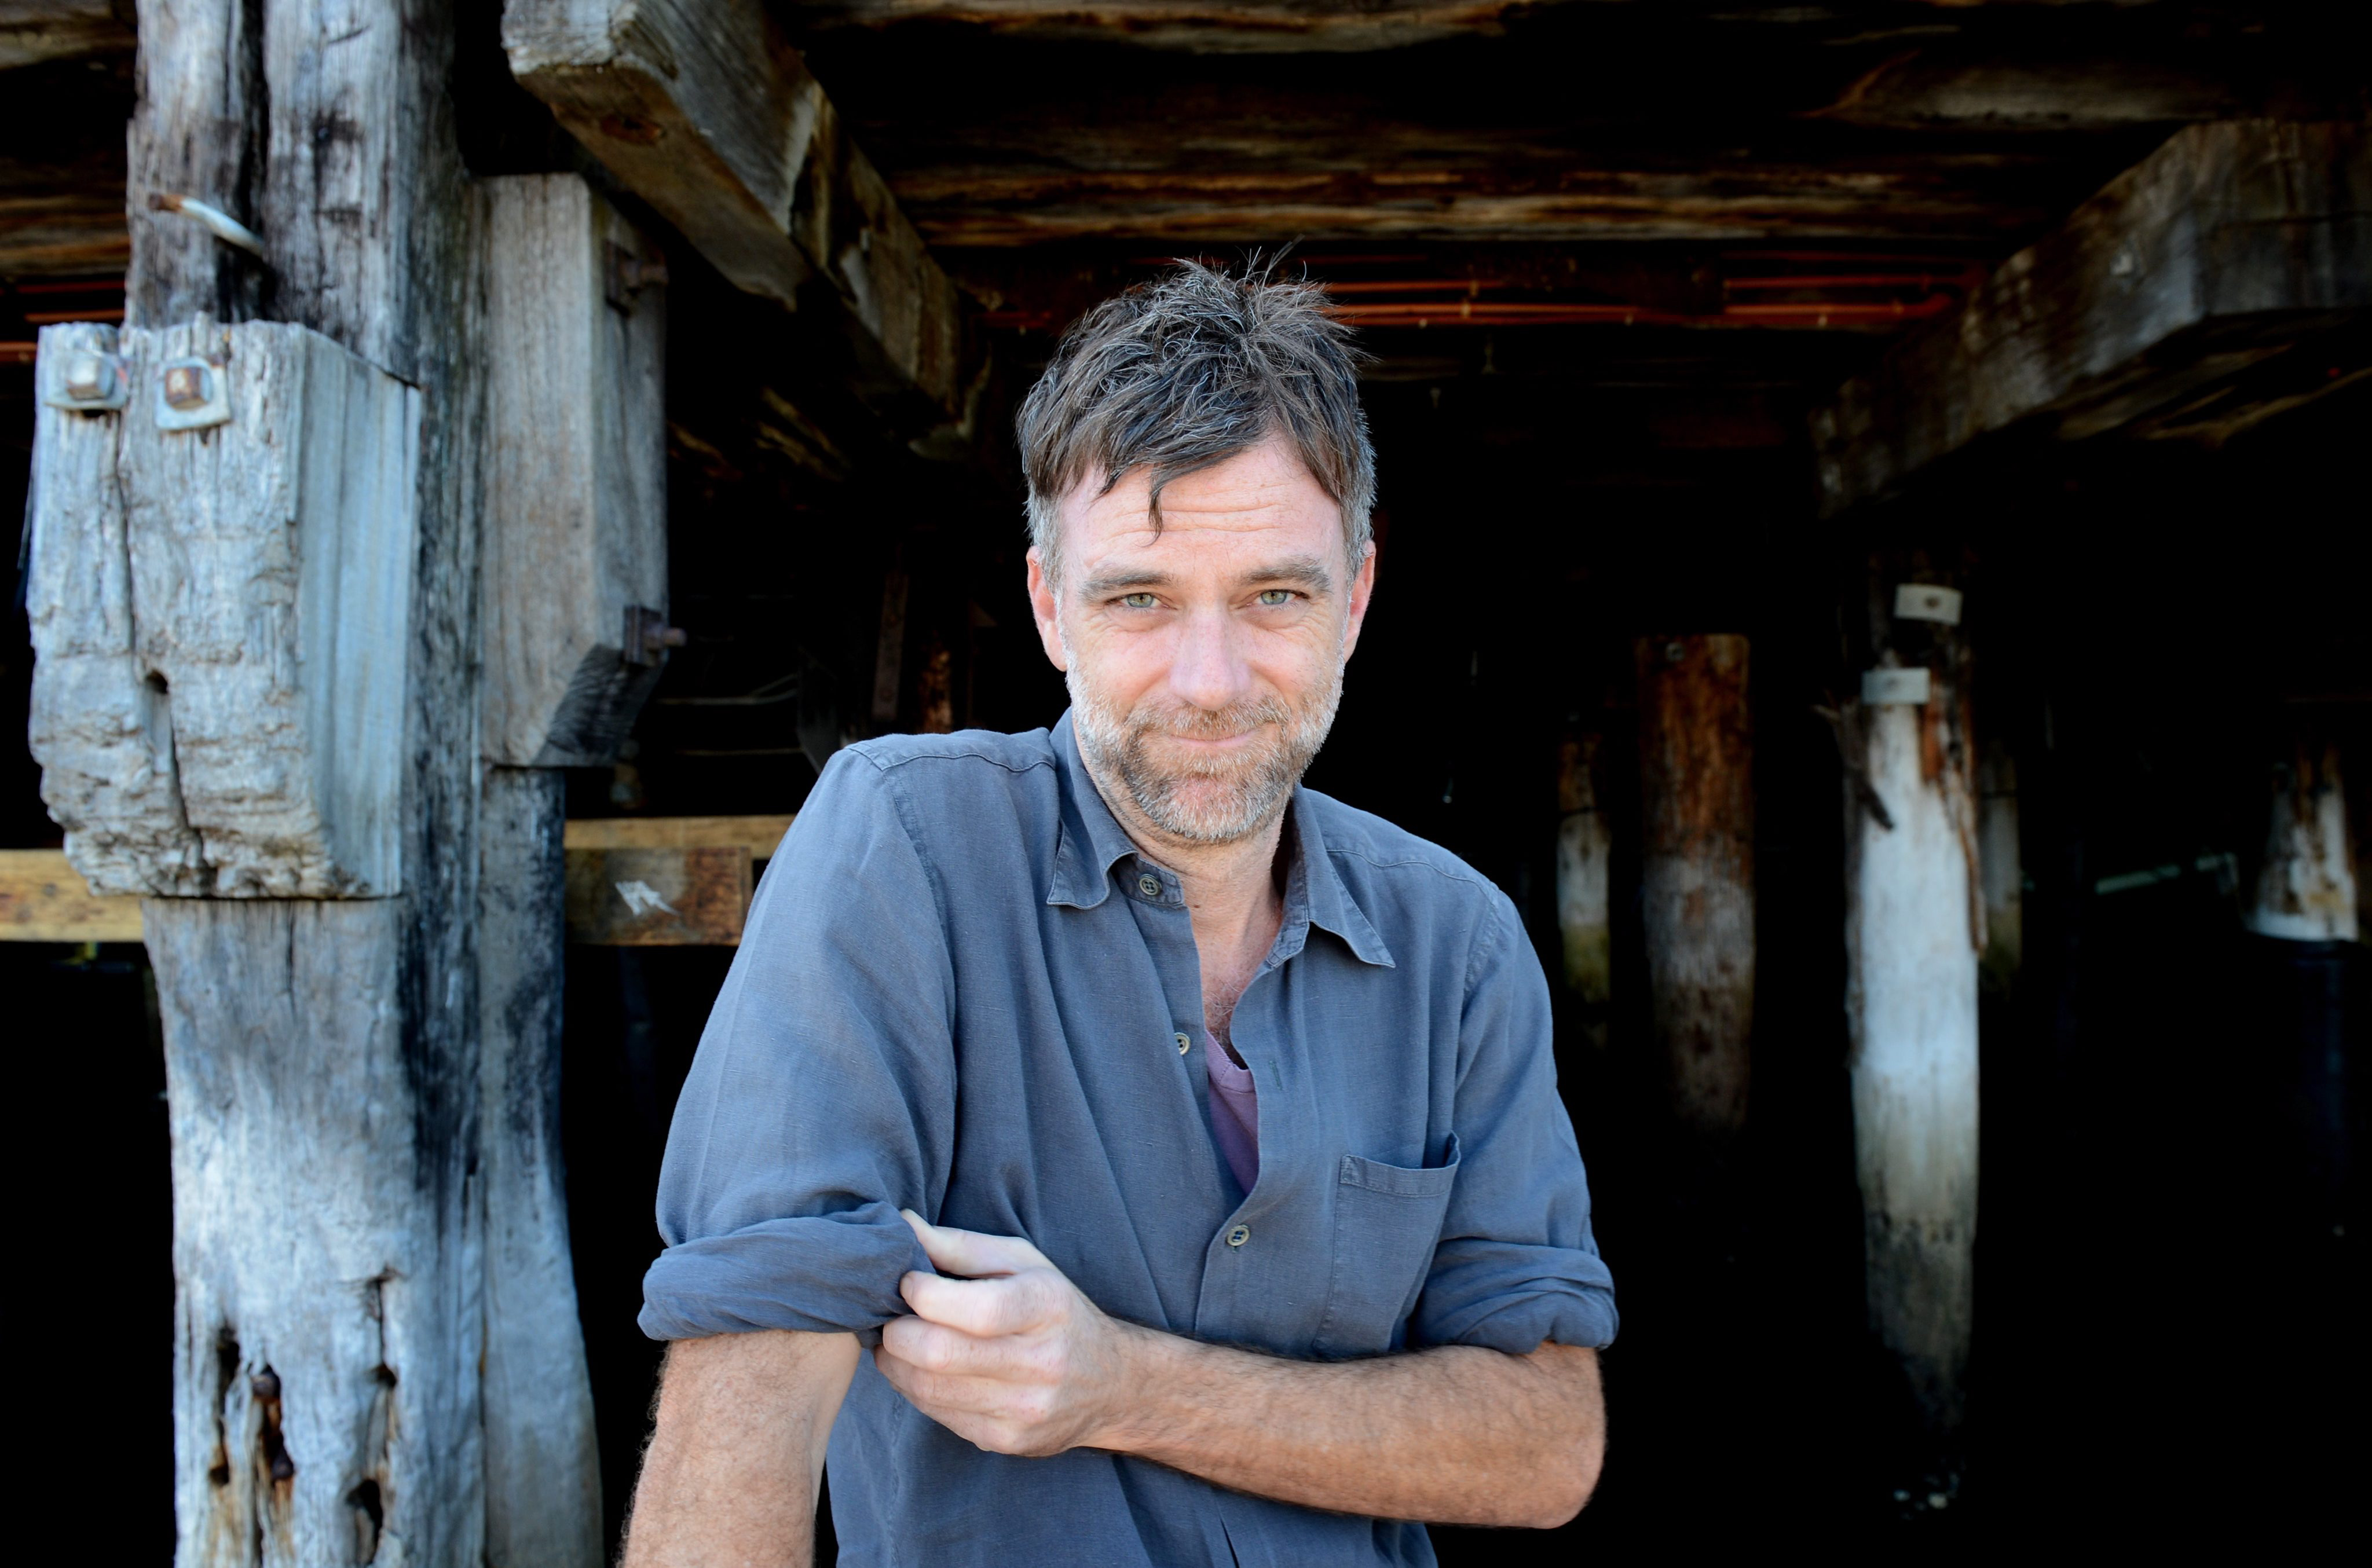 epa03444267 US film director Paul Thomas Anderson, poses for a photograph in Sydney, Australia, 24 October 2012. Anderson is